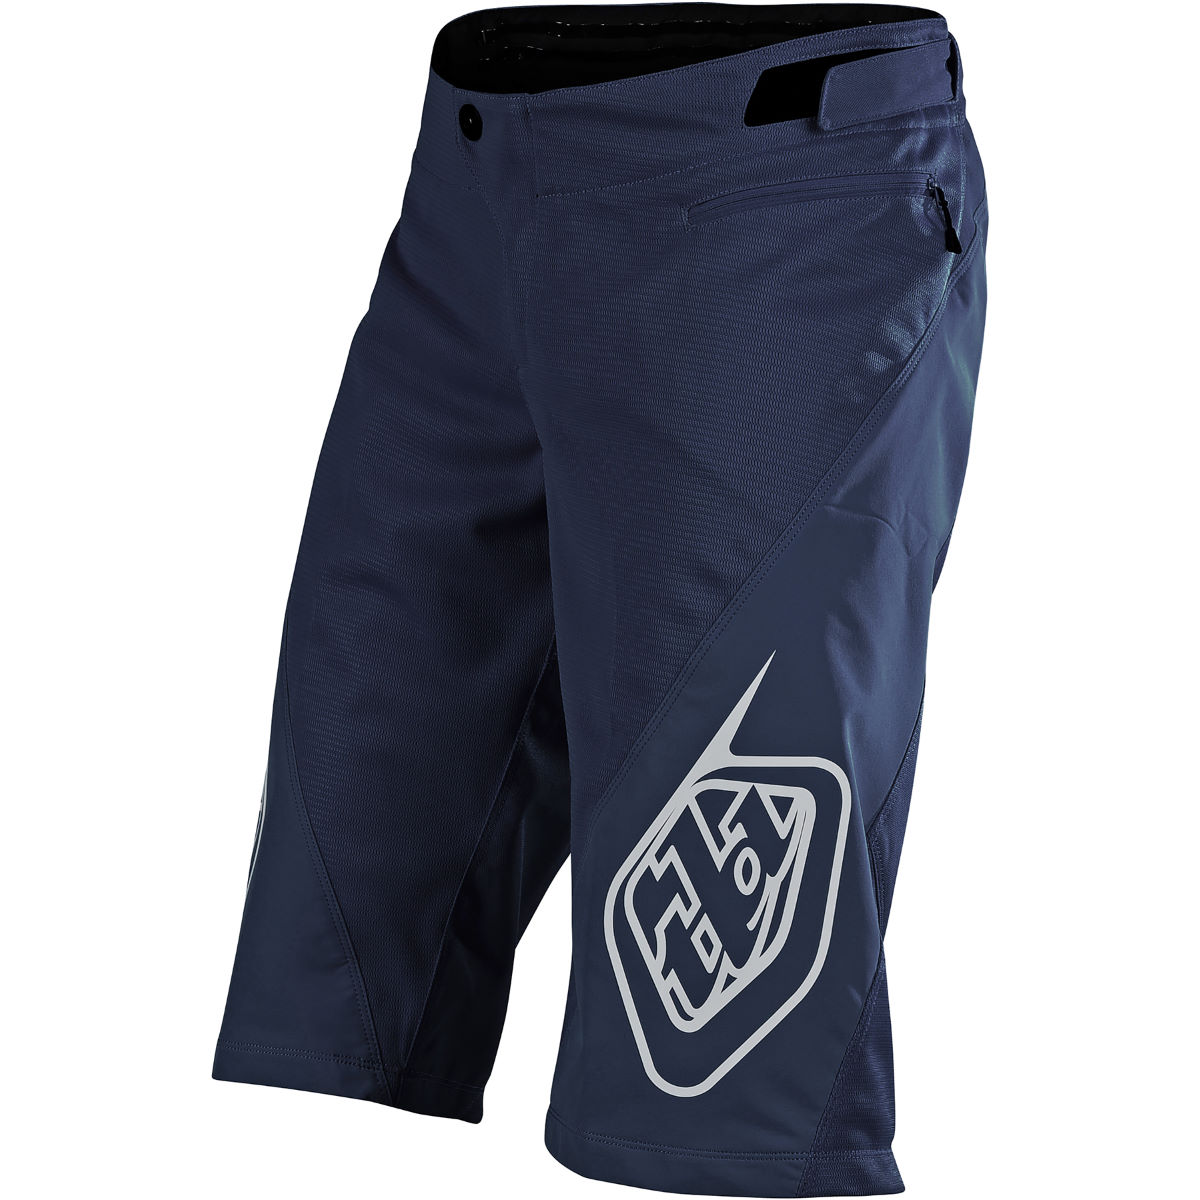 ComprarTroy Lee Designs Youth Sprint Shorts - Bermudas